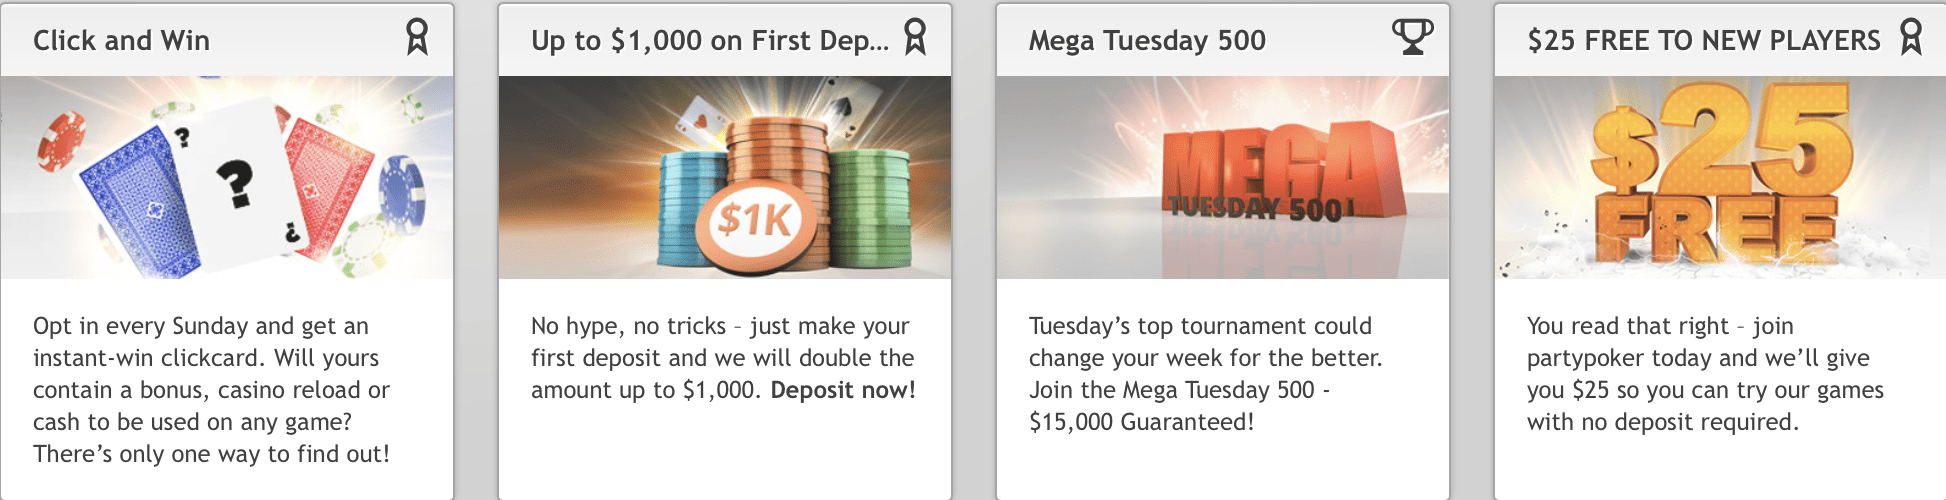 Party Poker NJ Bonuses